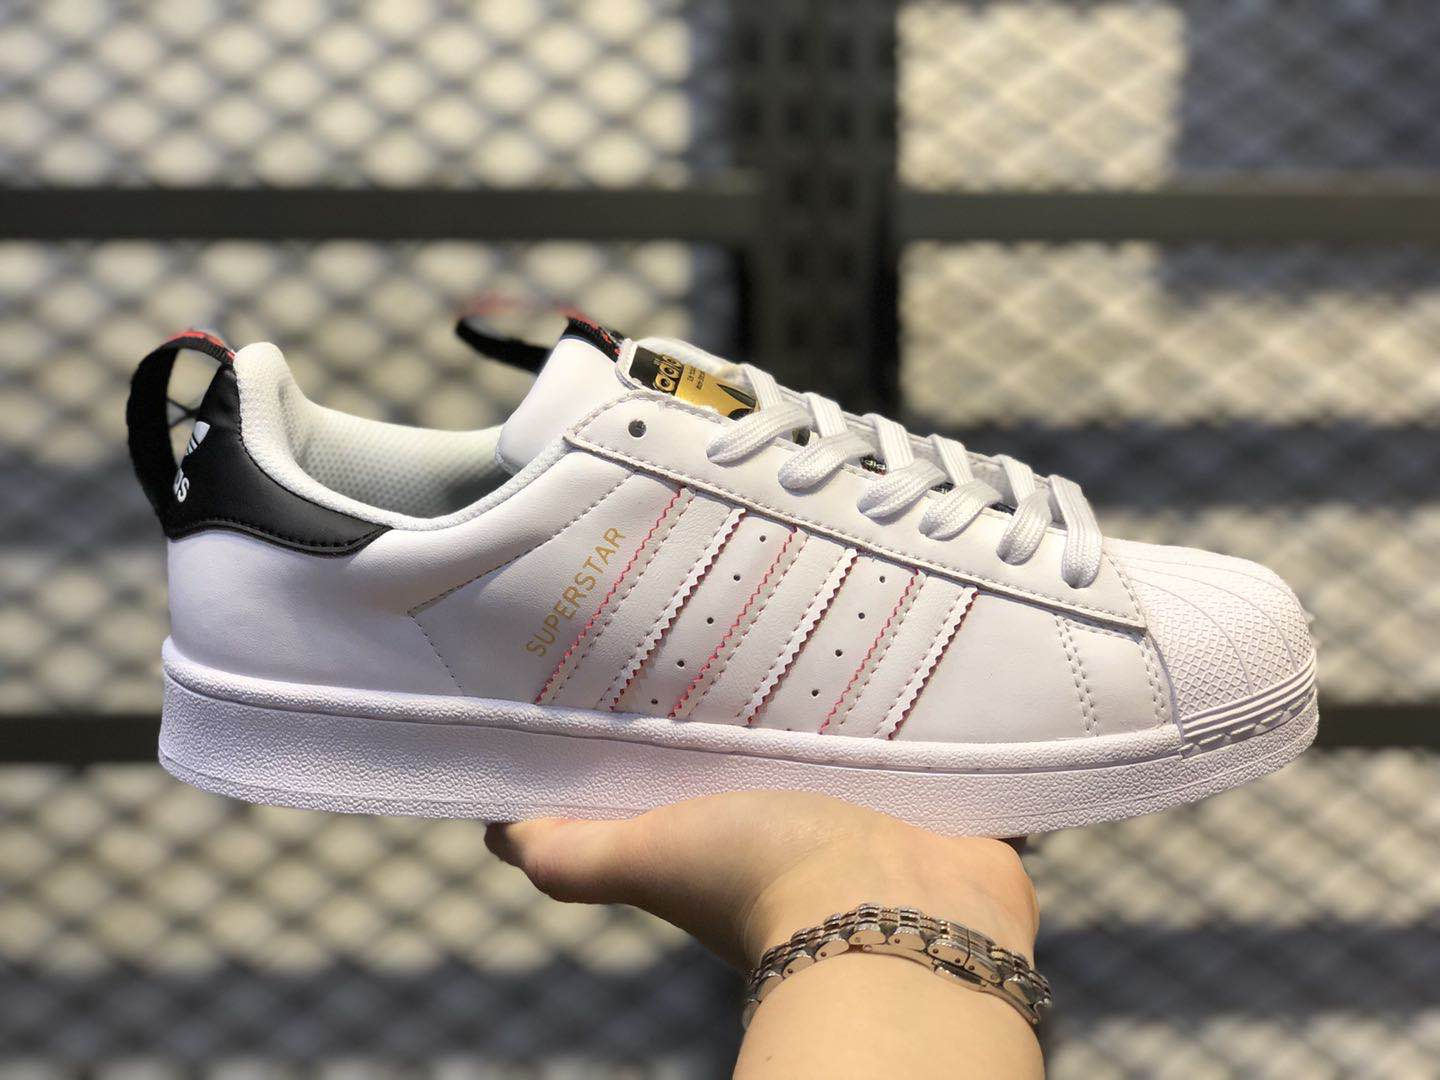 Adidas Wmns Superstar White Black Red FW6775 Casual Sport Shoes